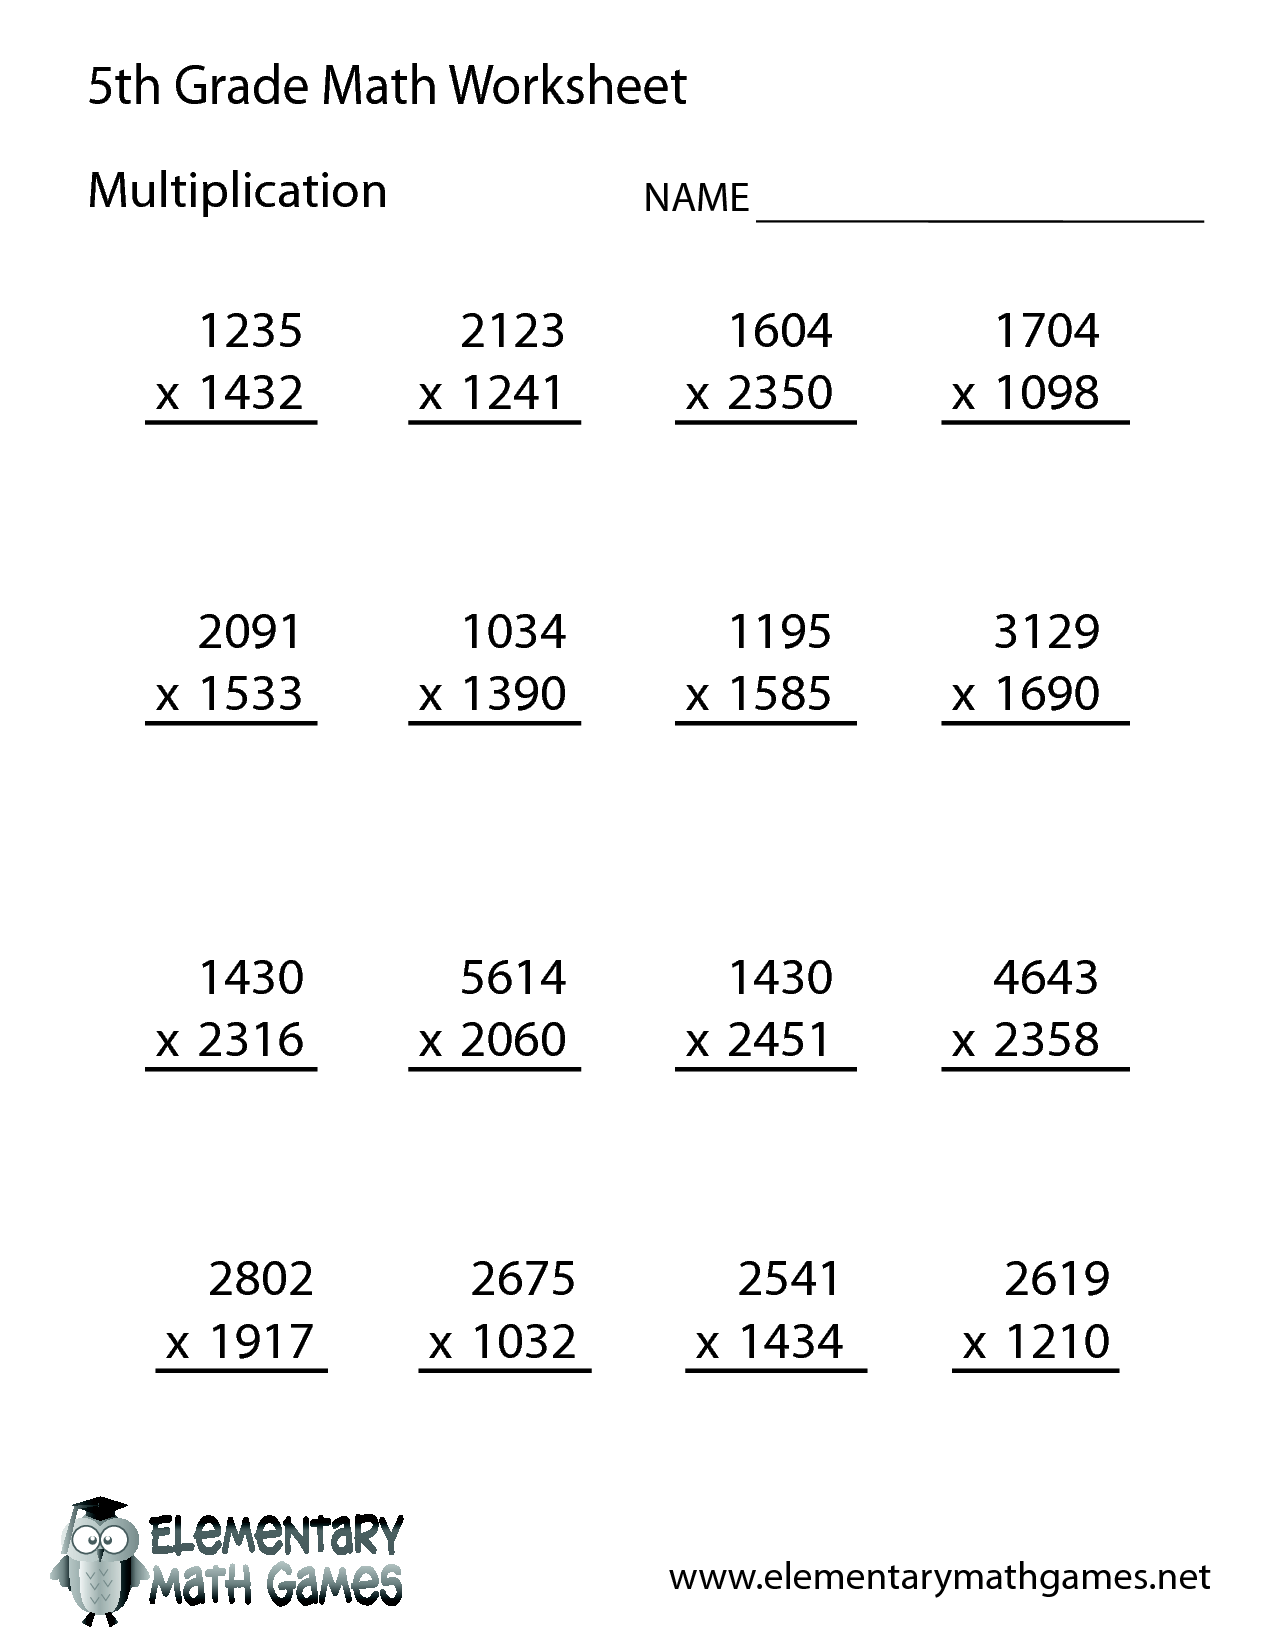 Free Math Worksheets For 5th Grade